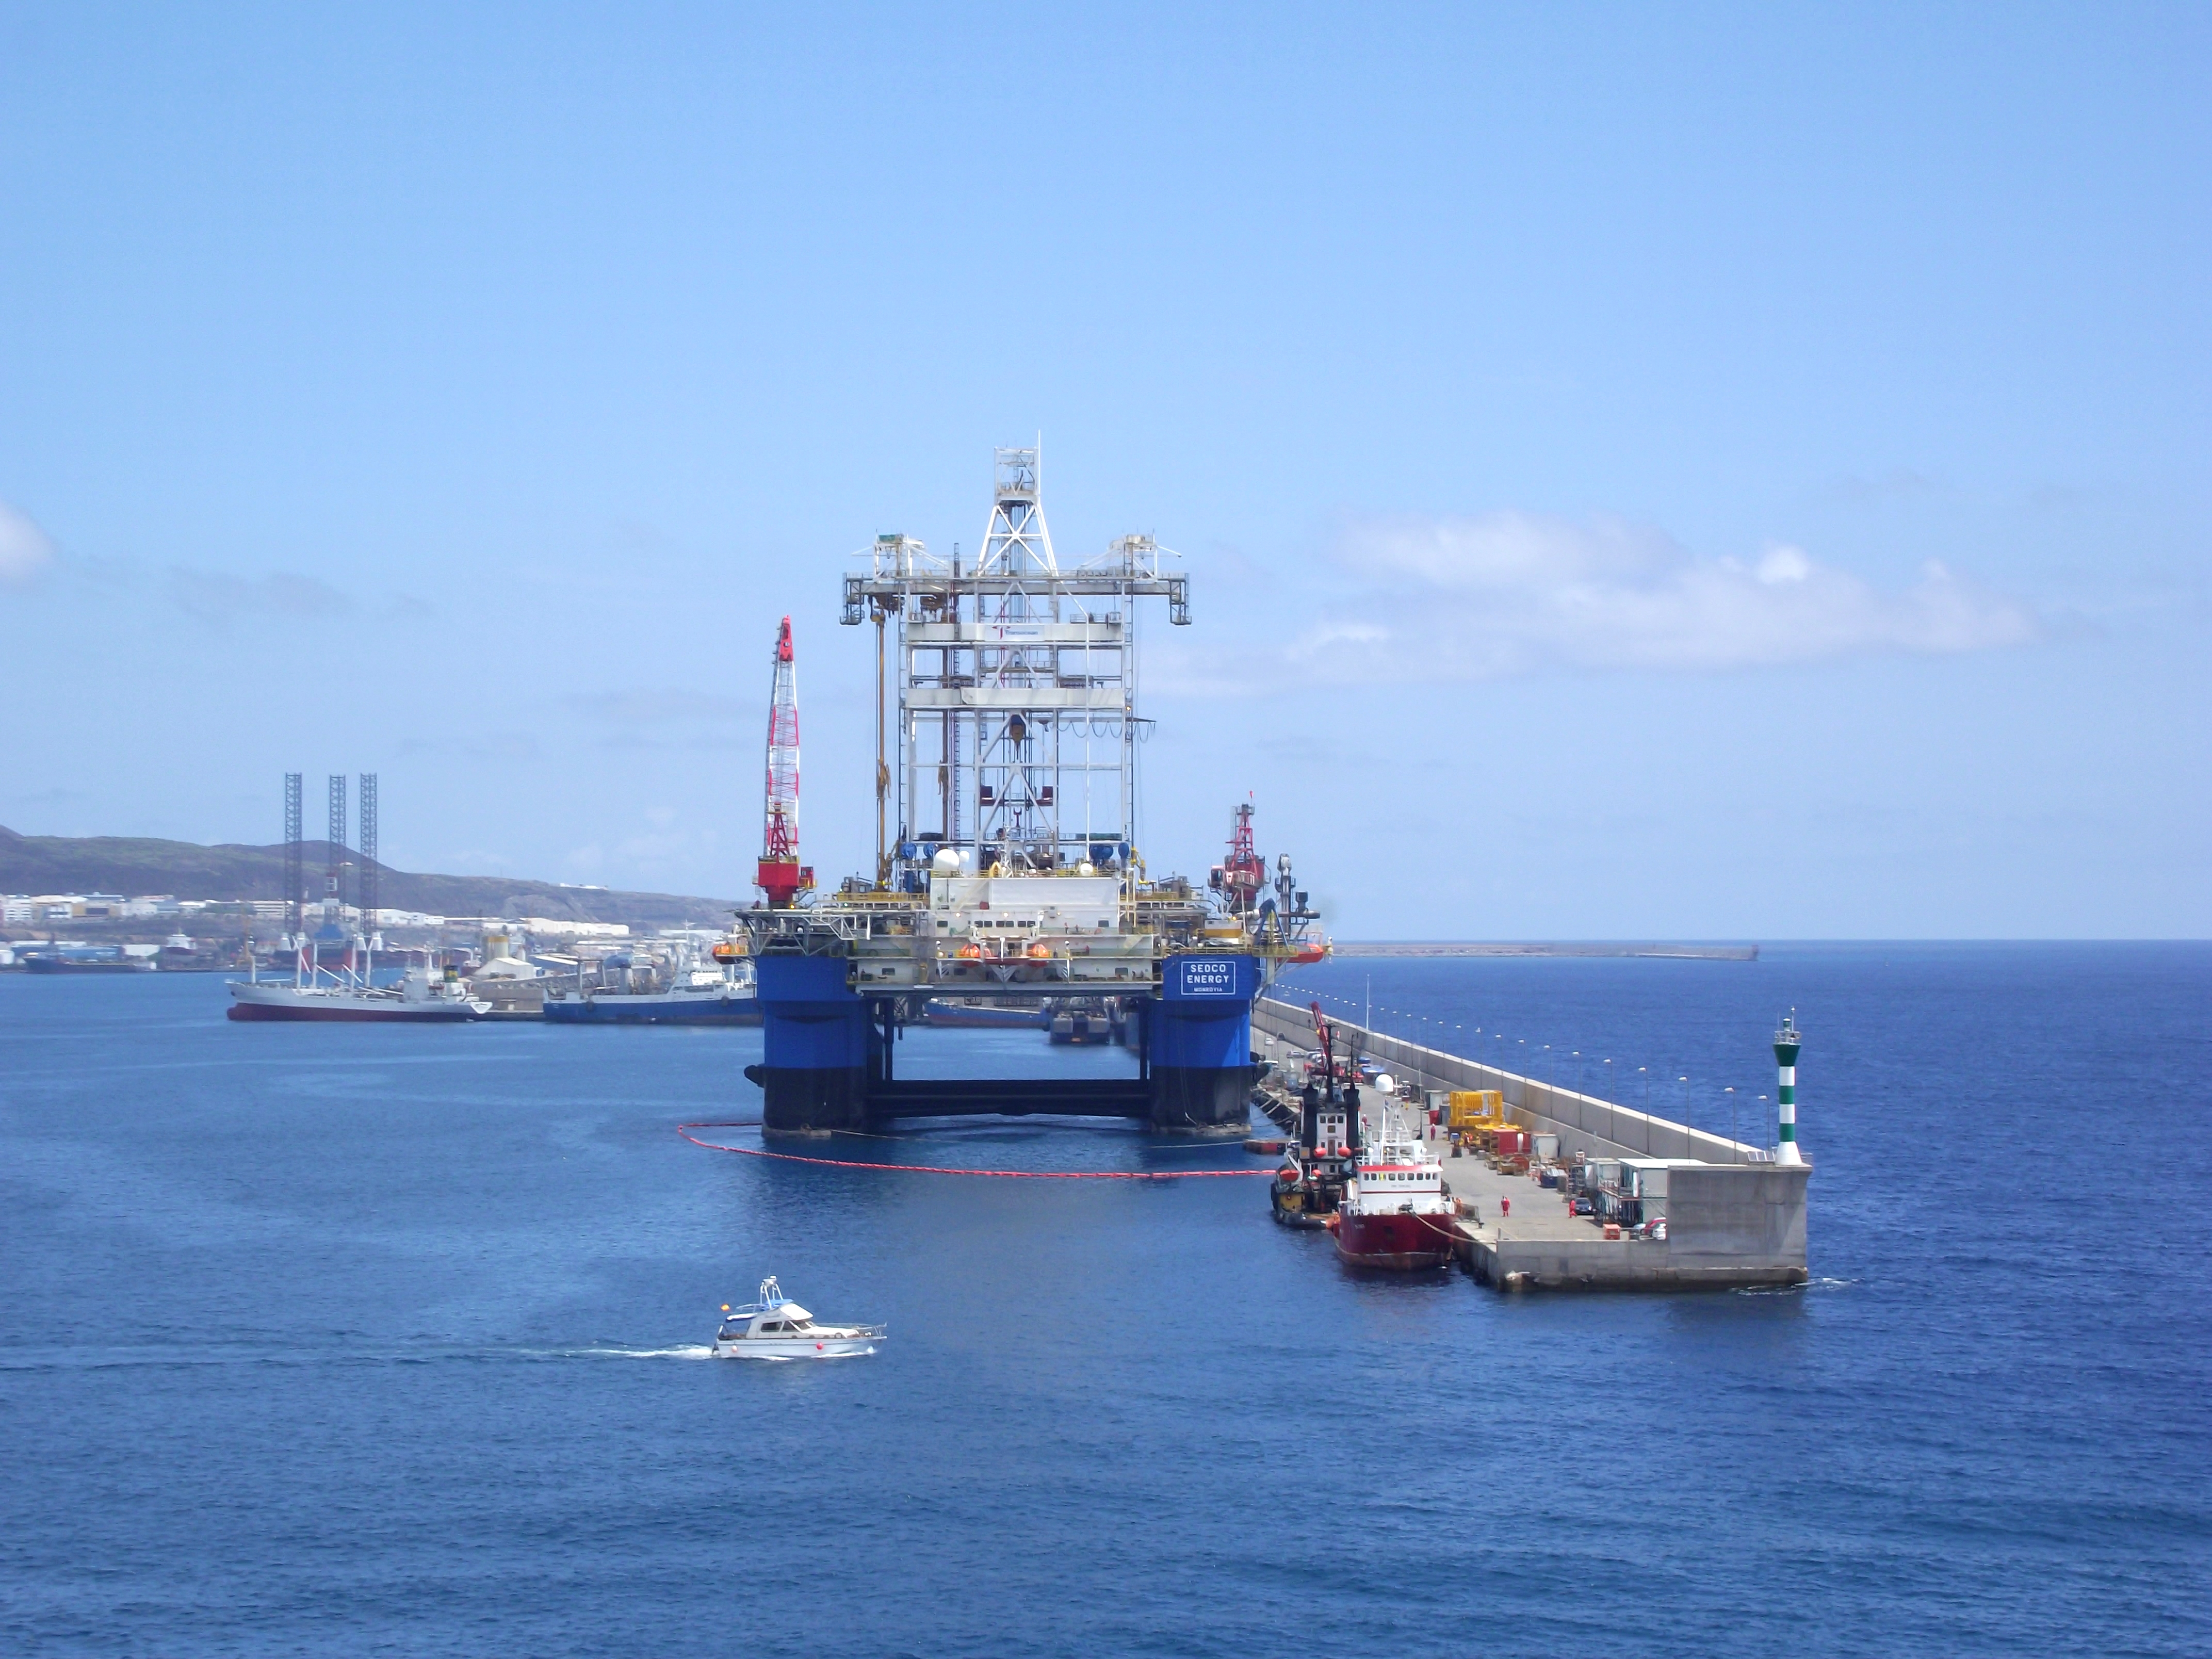 stockvault-an-oil-rig-at-the-port141378.